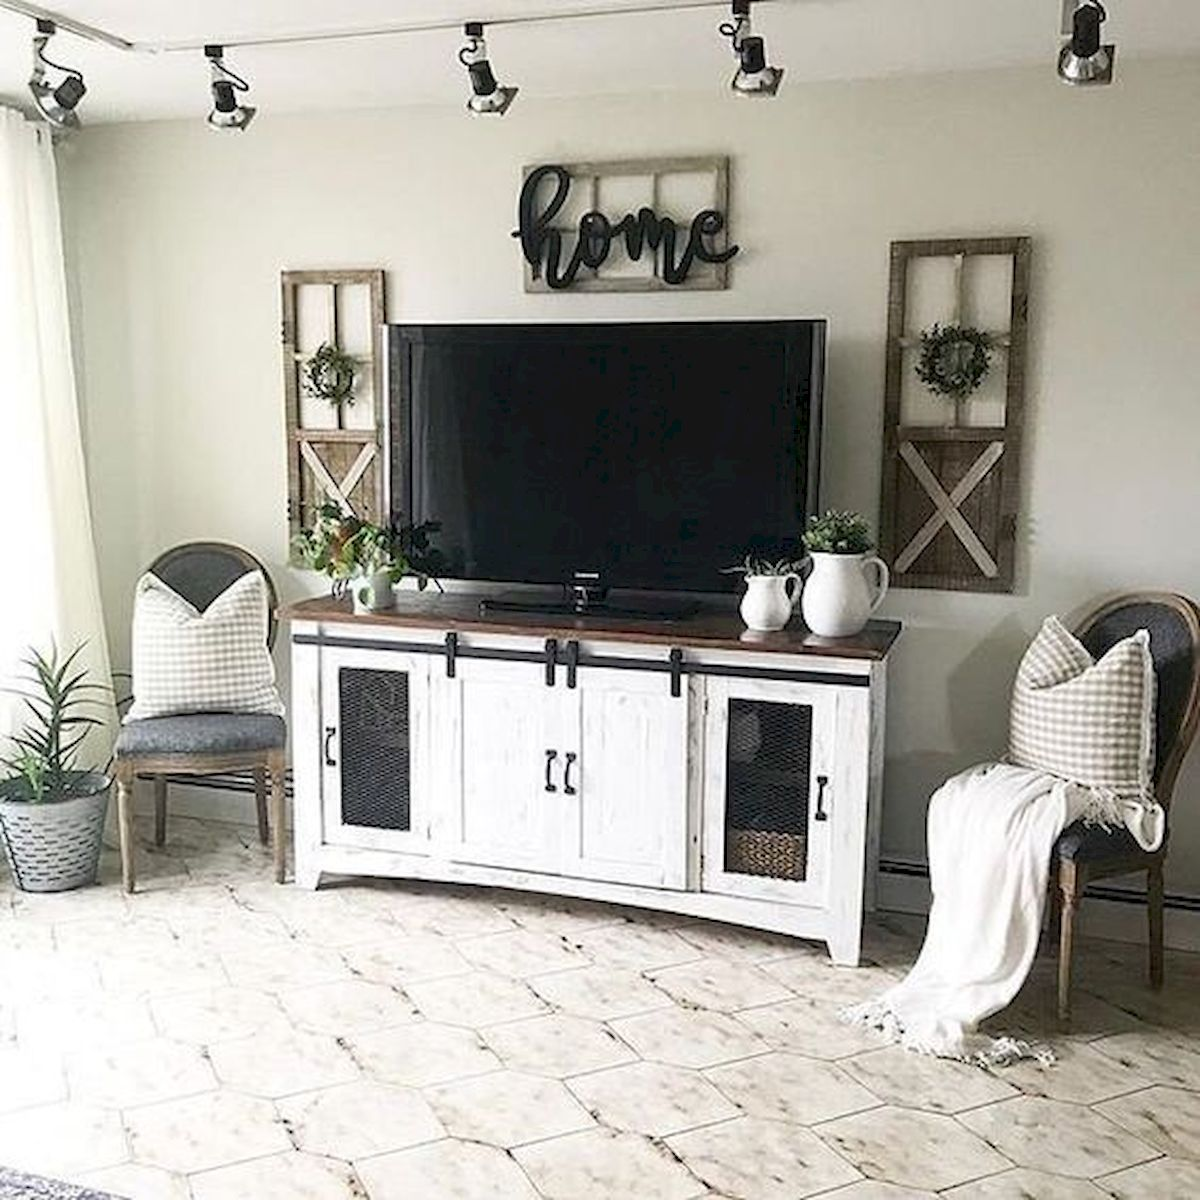 Adorable 33 Best Farmhouse Living Room Tv Stand Design Ideas Https Coachd Living Room Tv Stand Farmhouse Decor Living Room Modern Farmhouse Living Room Decor